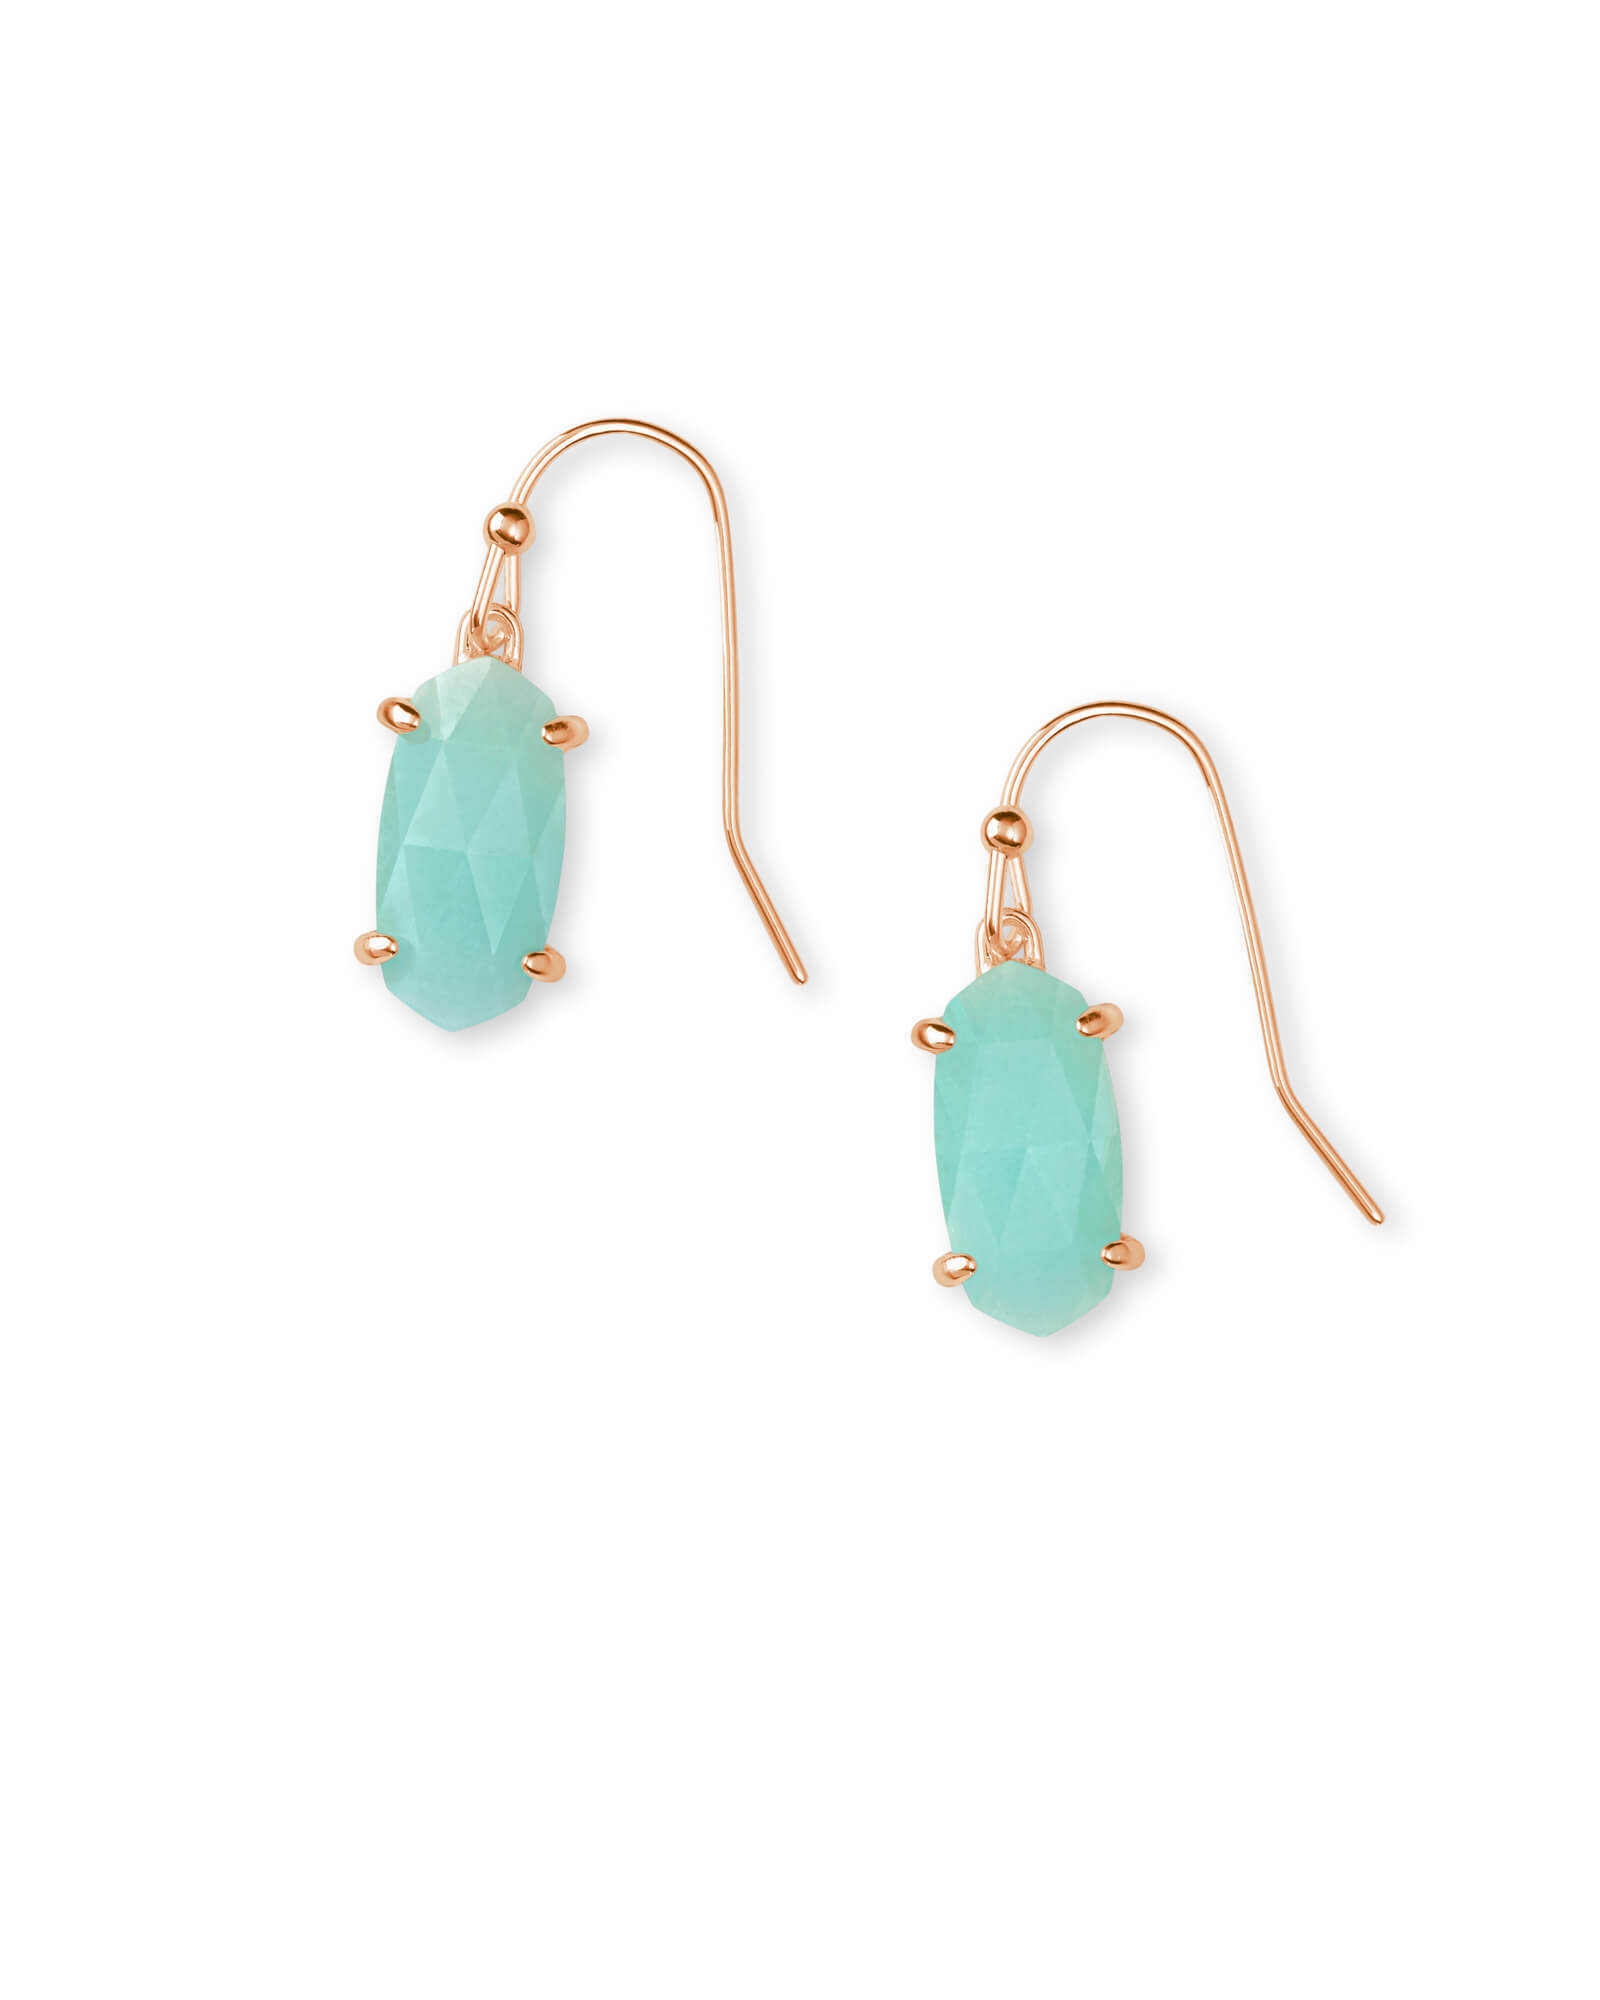 Lemmi Rose Gold Drop Earrings in Teal Quartzite